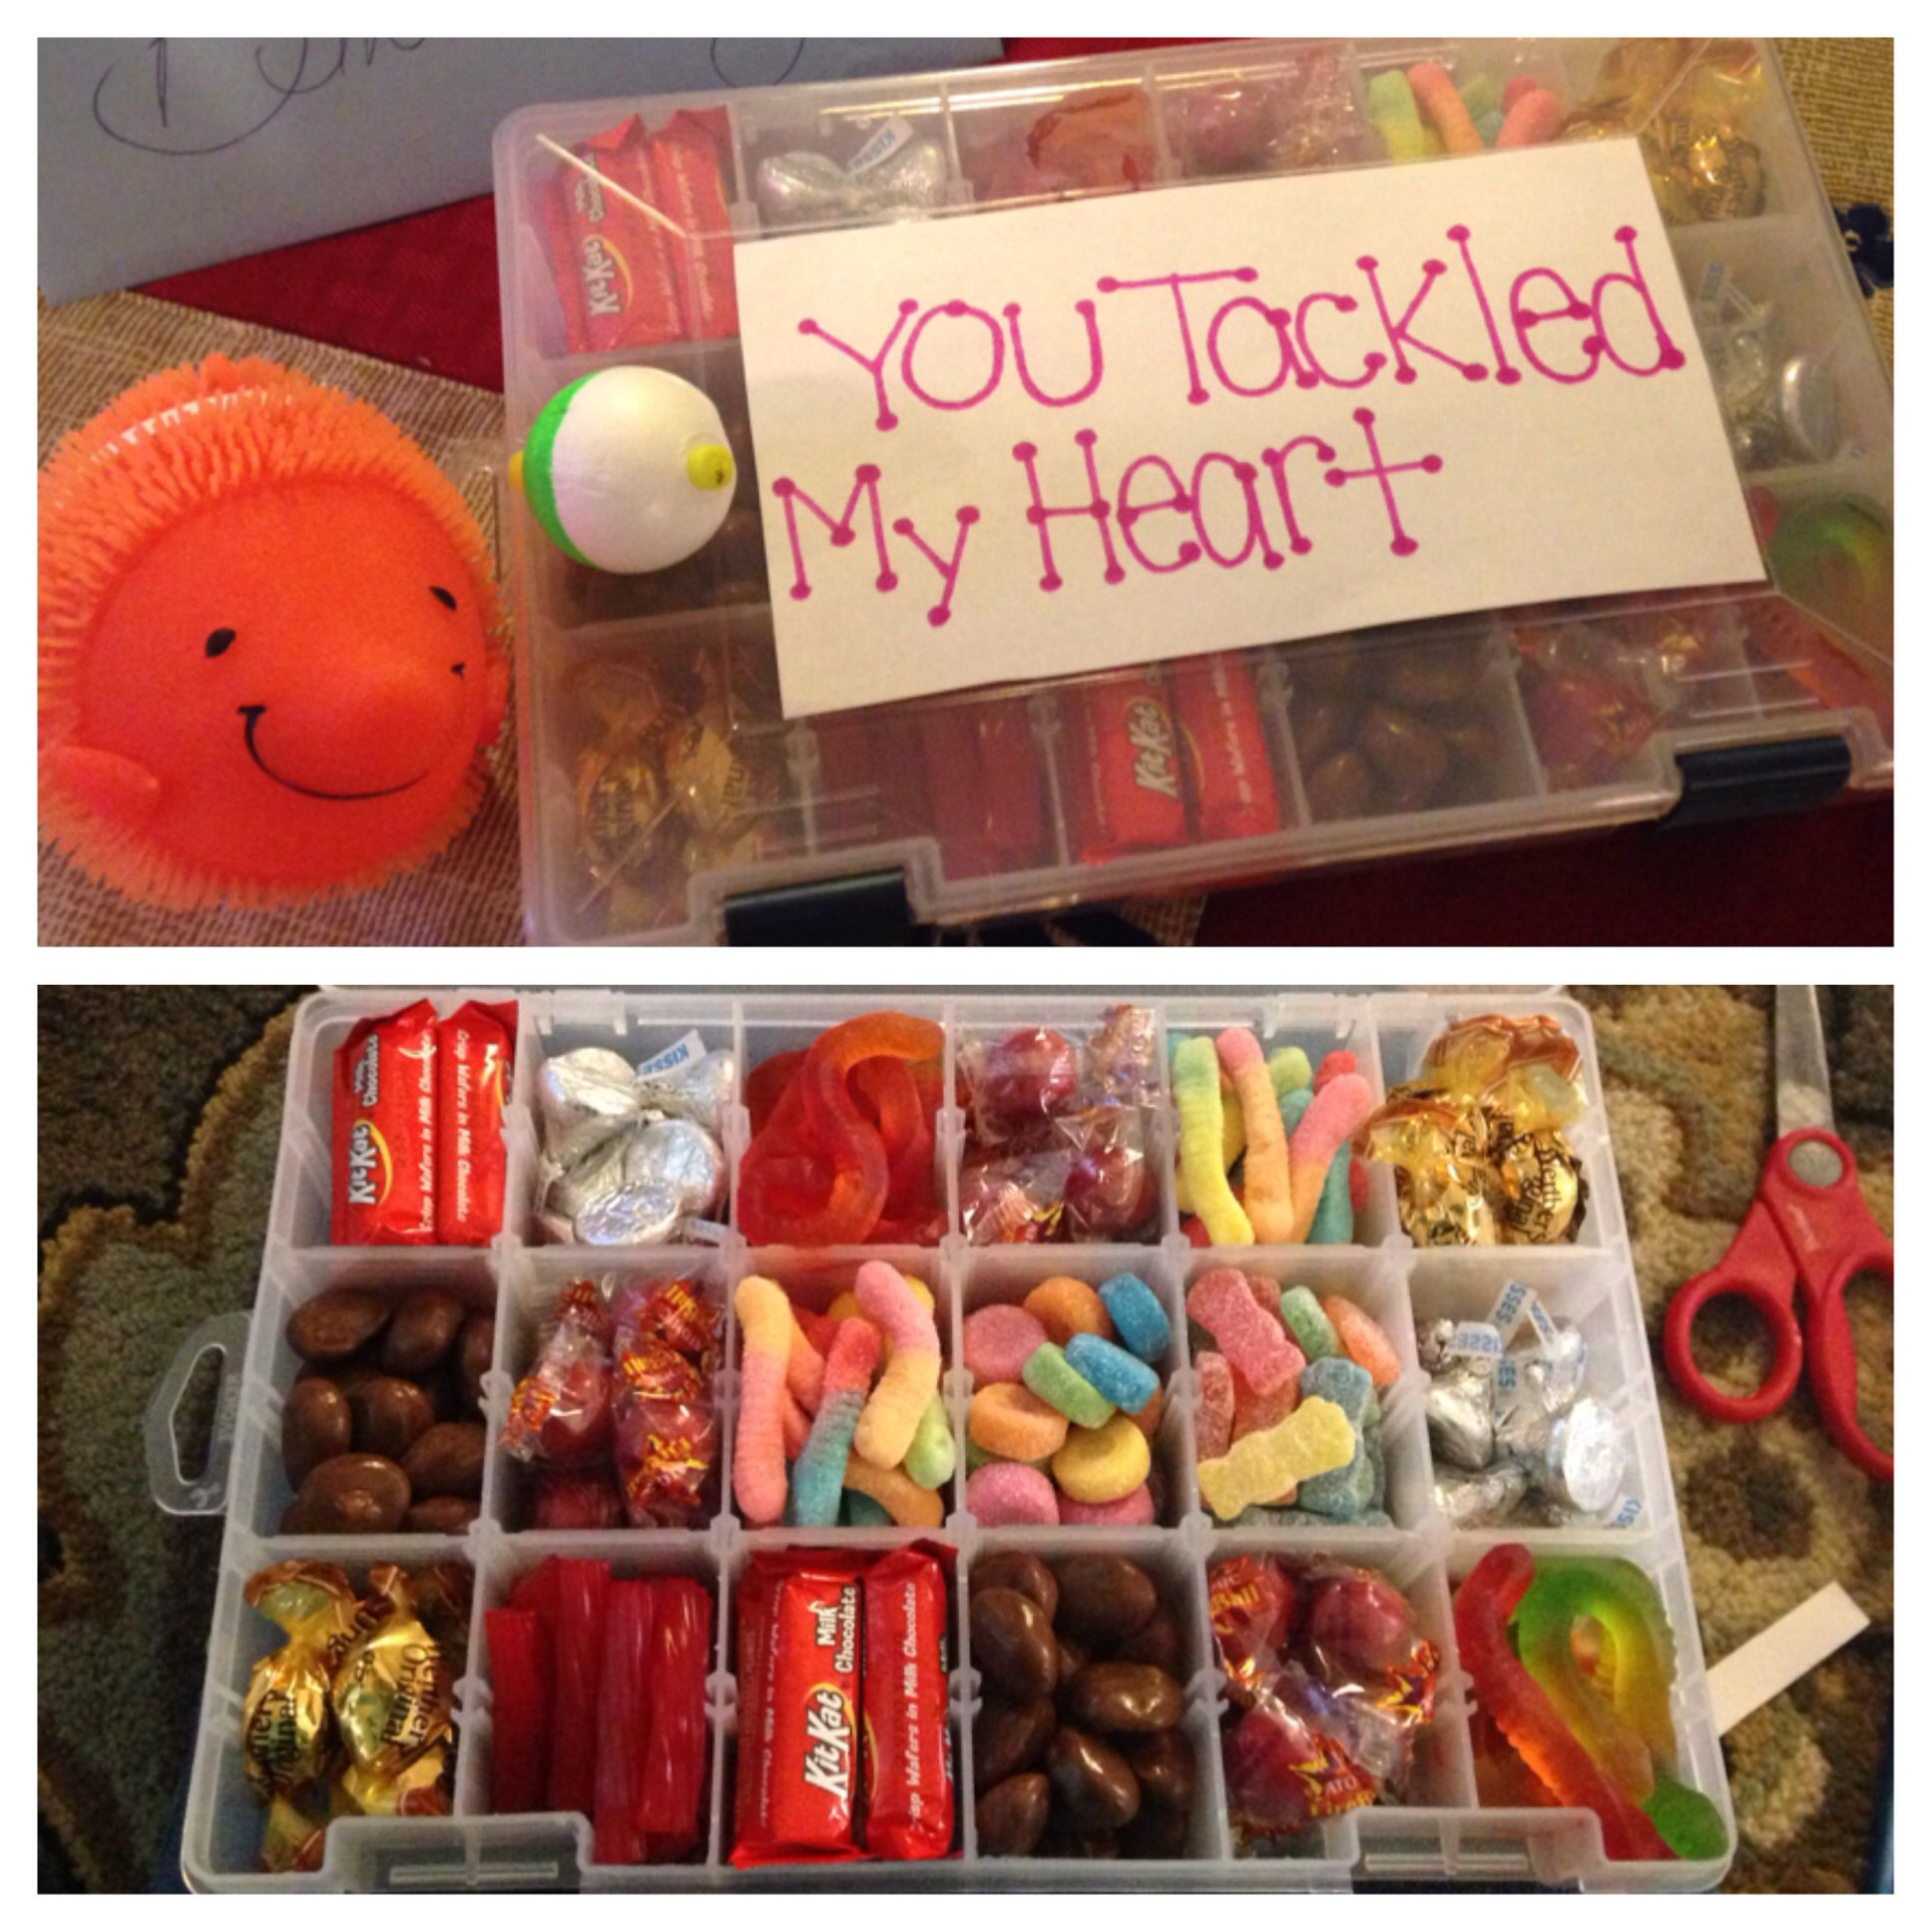 A tackle box with candy! Country boyfriend gifts